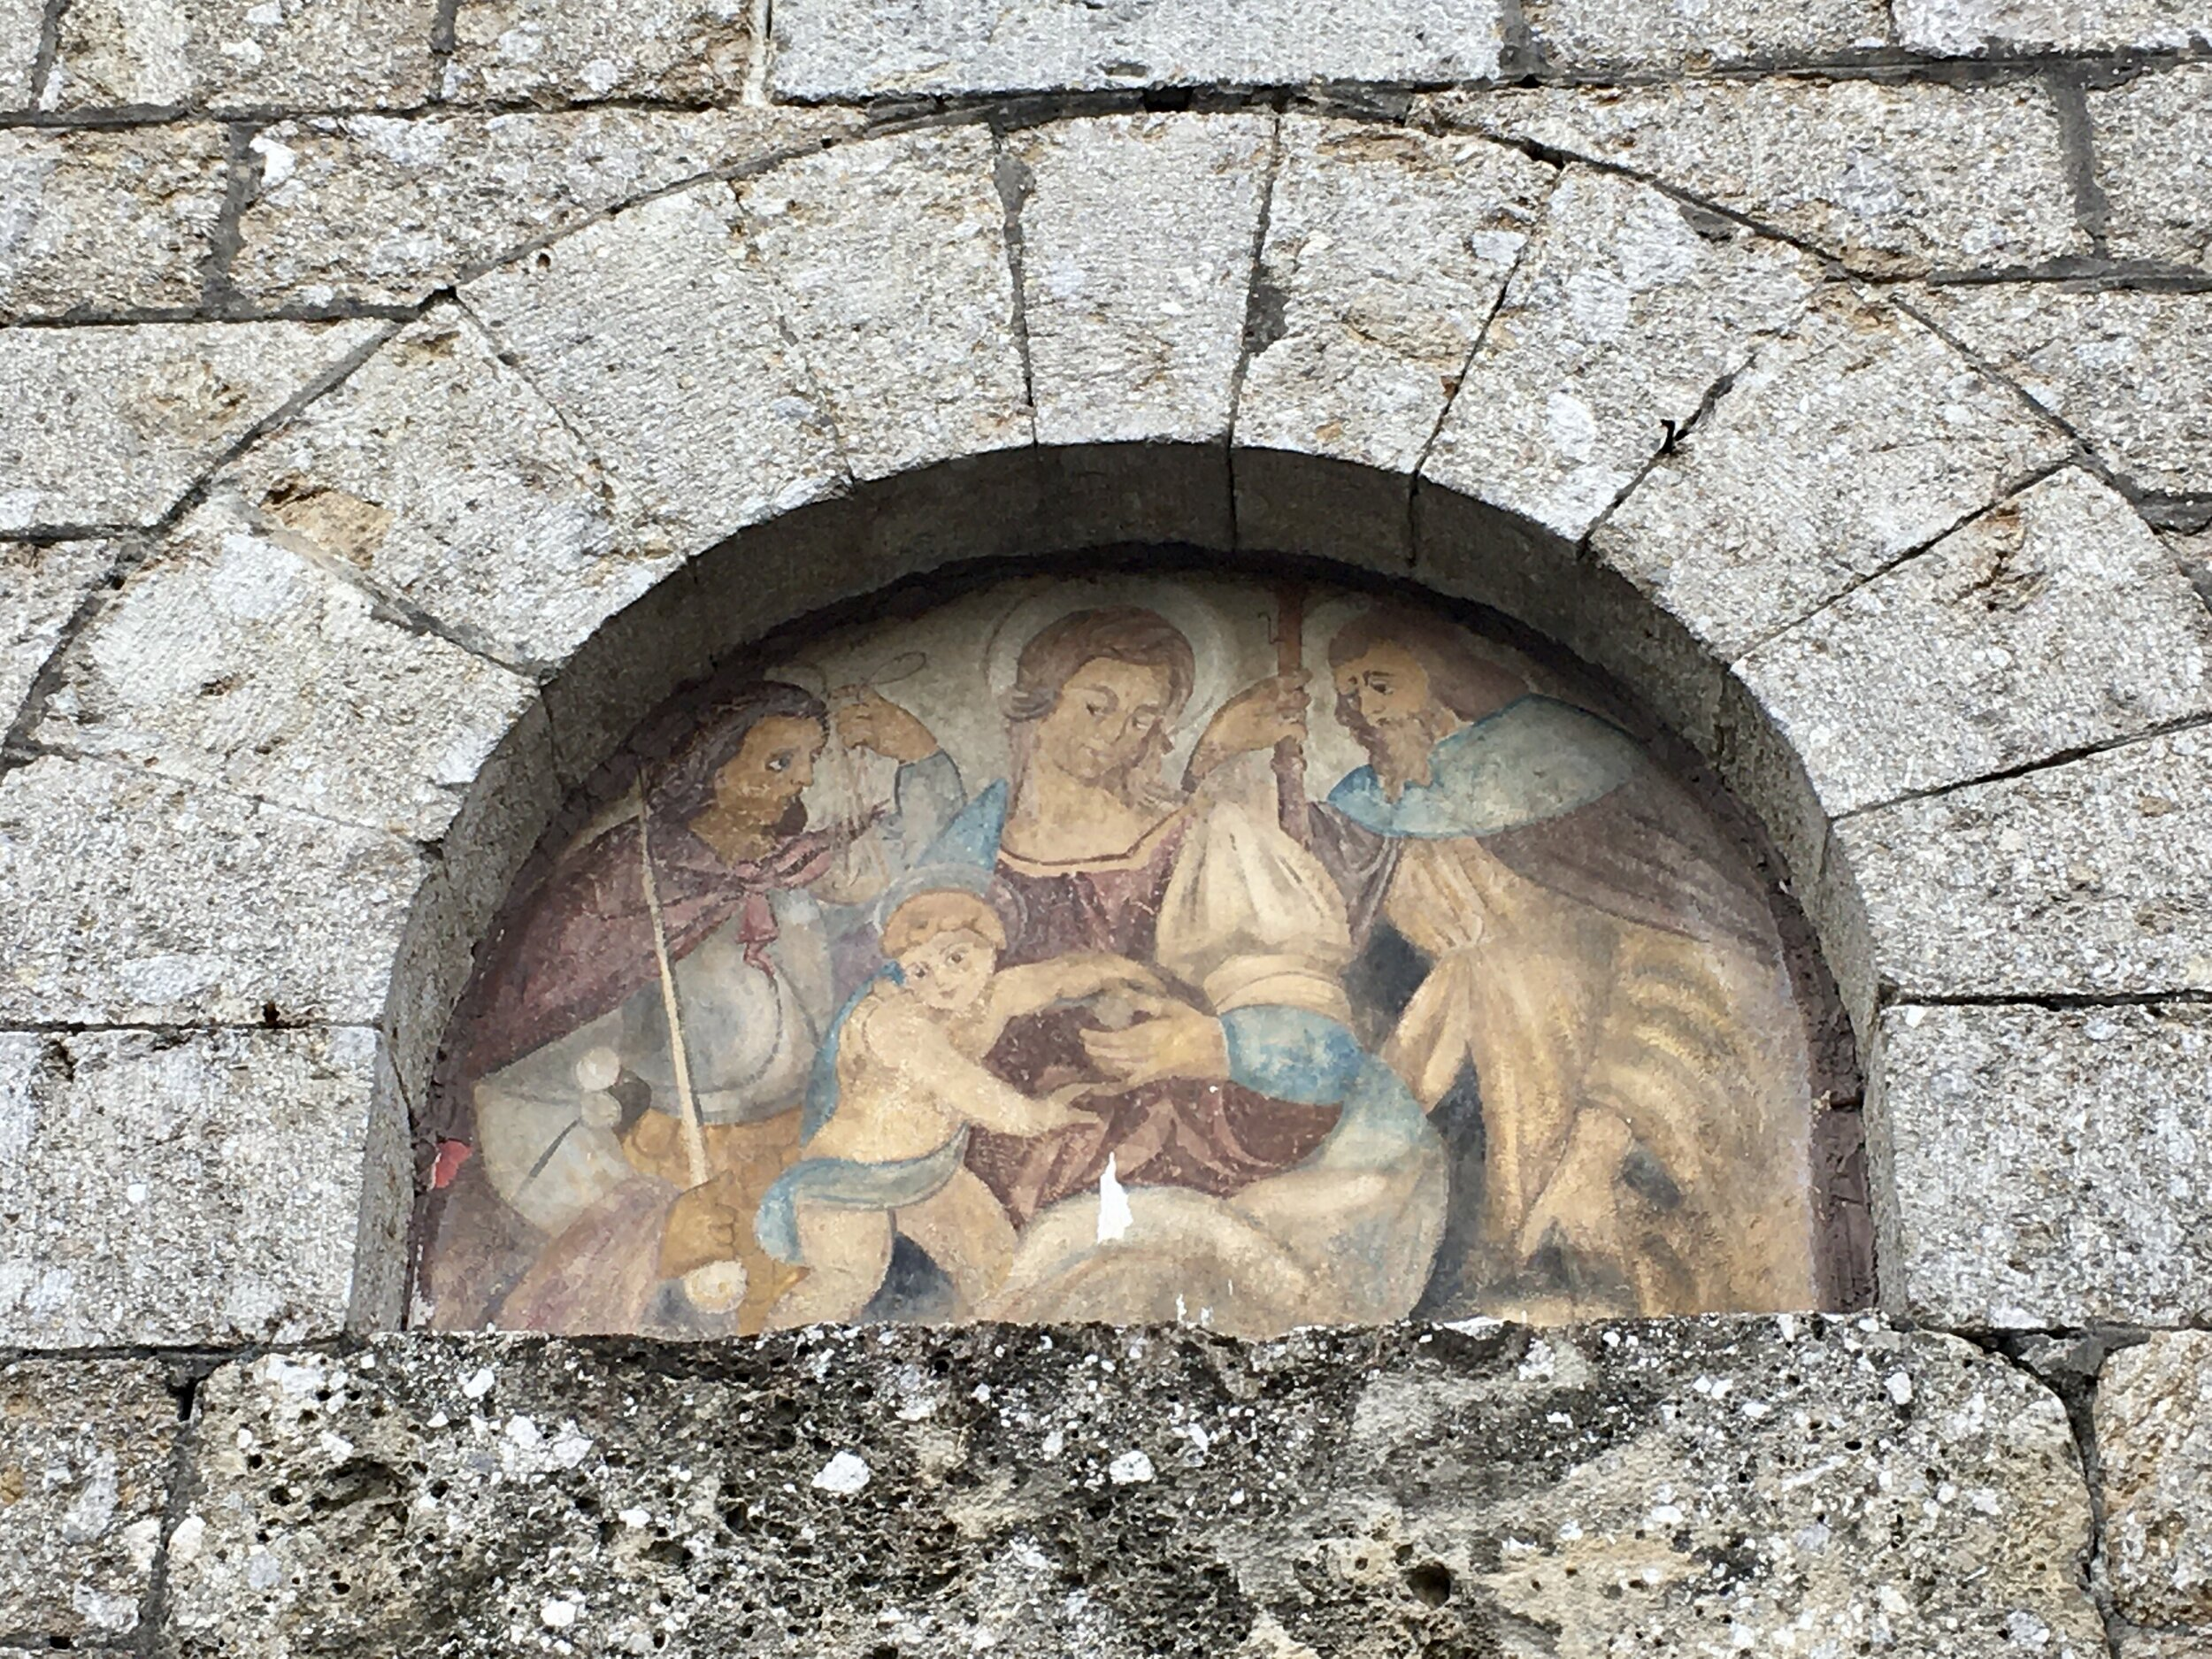 Over the entrance to Chiesa di San Michele Arcangelo